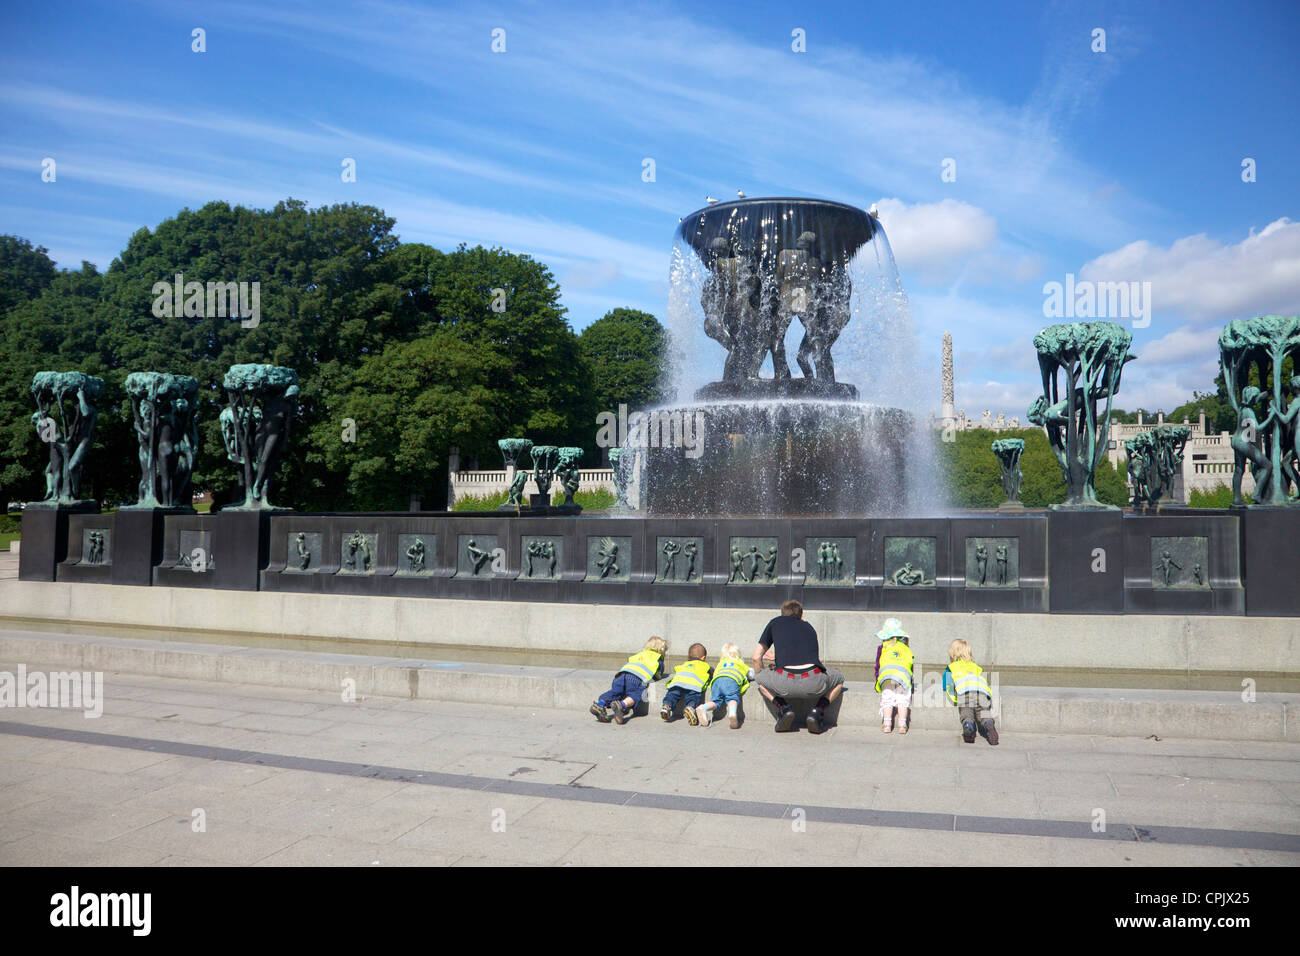 Fountain with Tree Groups, by Gustav Vigeland, sculptures in bronze in  Vigeland Sculpture Park, Frognerparken, - Stock Image